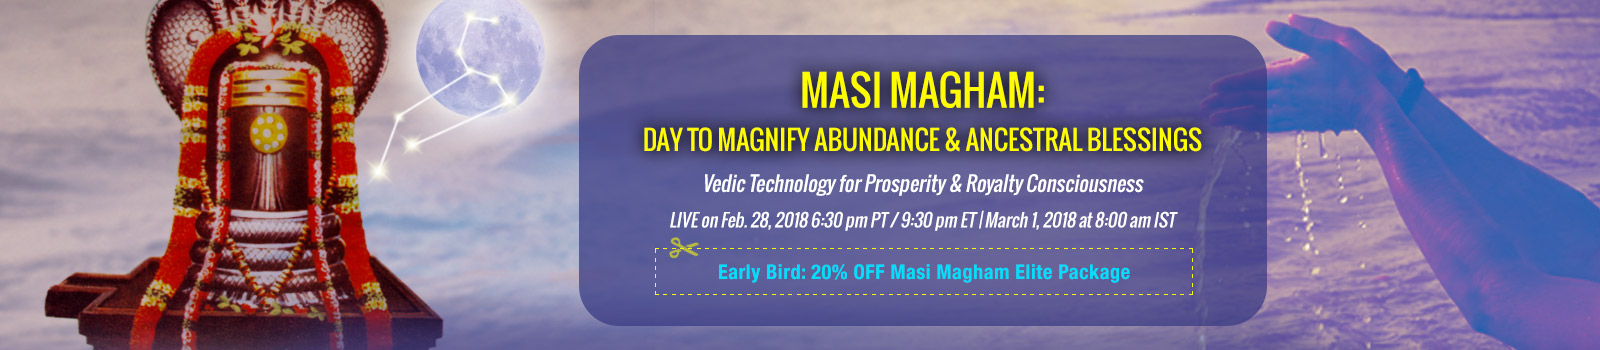 Astroved vedic astrology vedic remedies indian astrology free masi magham fandeluxe Images